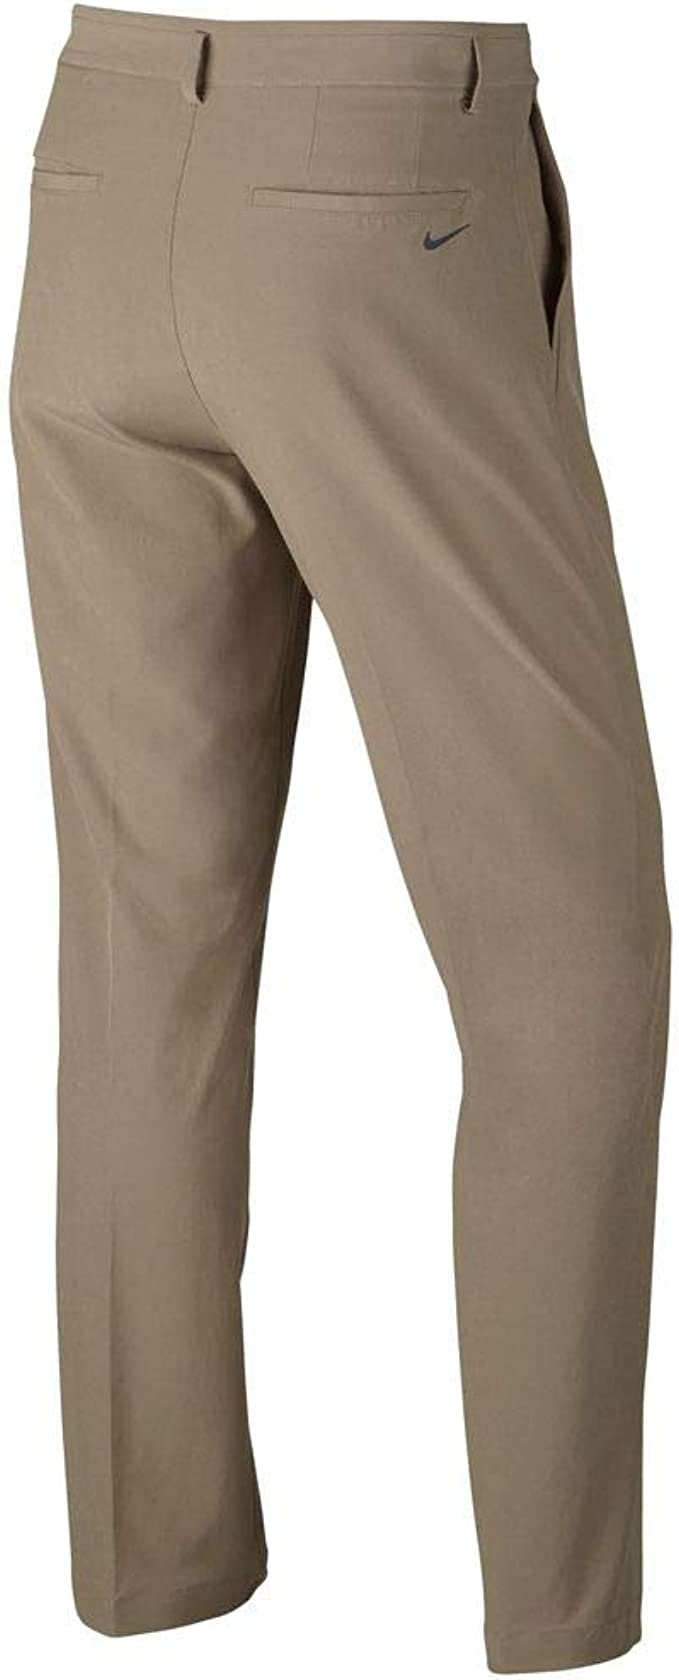 Rispetto Installazione catturare  Amazon.com : Nike Flat Front Stretch Woven Golf Pants 2017 Khaki/Anthracite  34/32 : Clothing